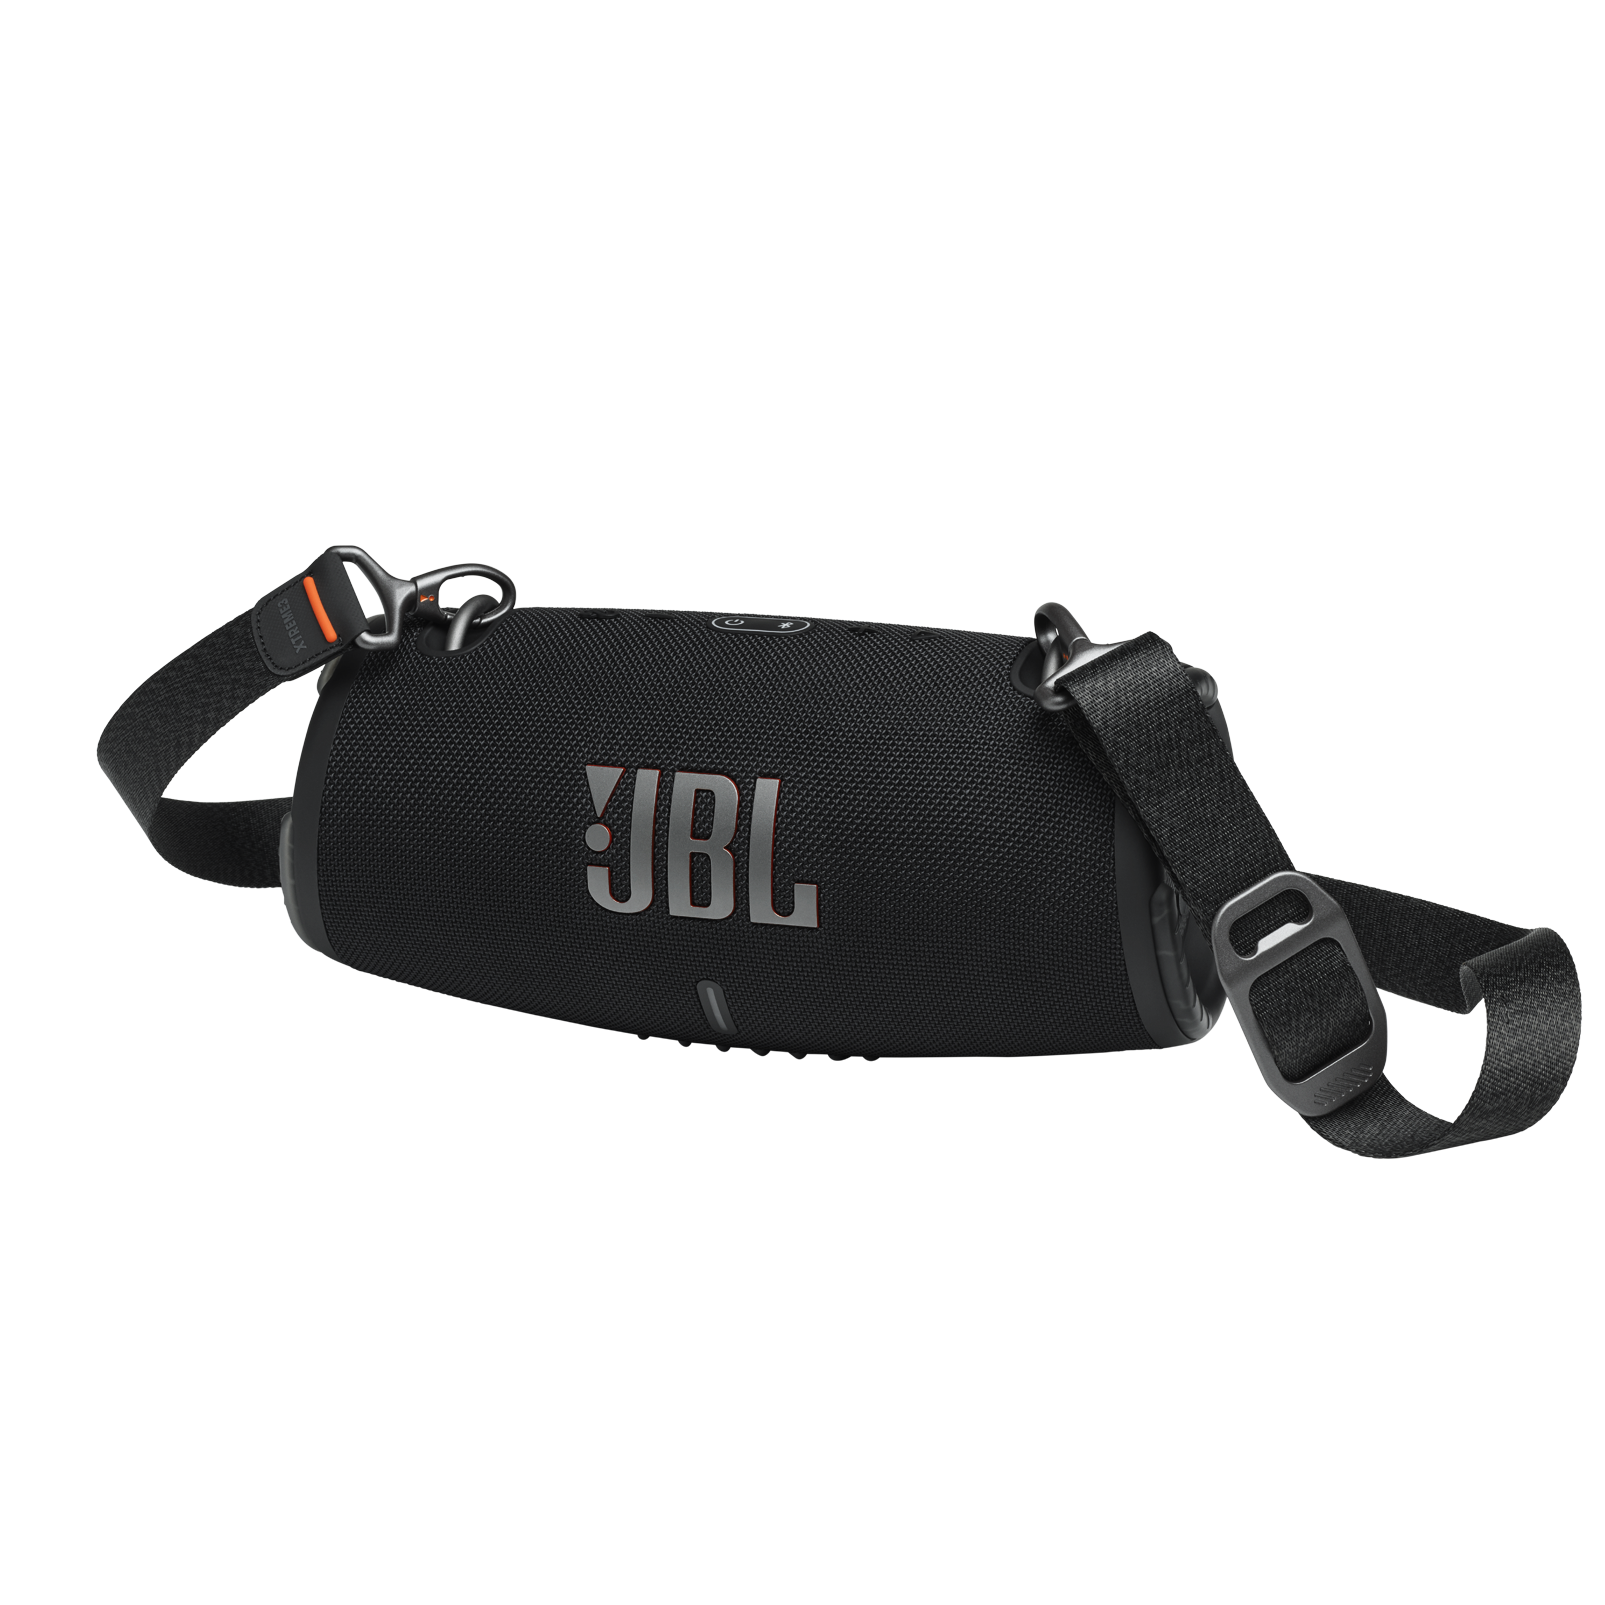 JBL Xtreme 3 - Black - Portable waterproof speaker - Detailshot 4